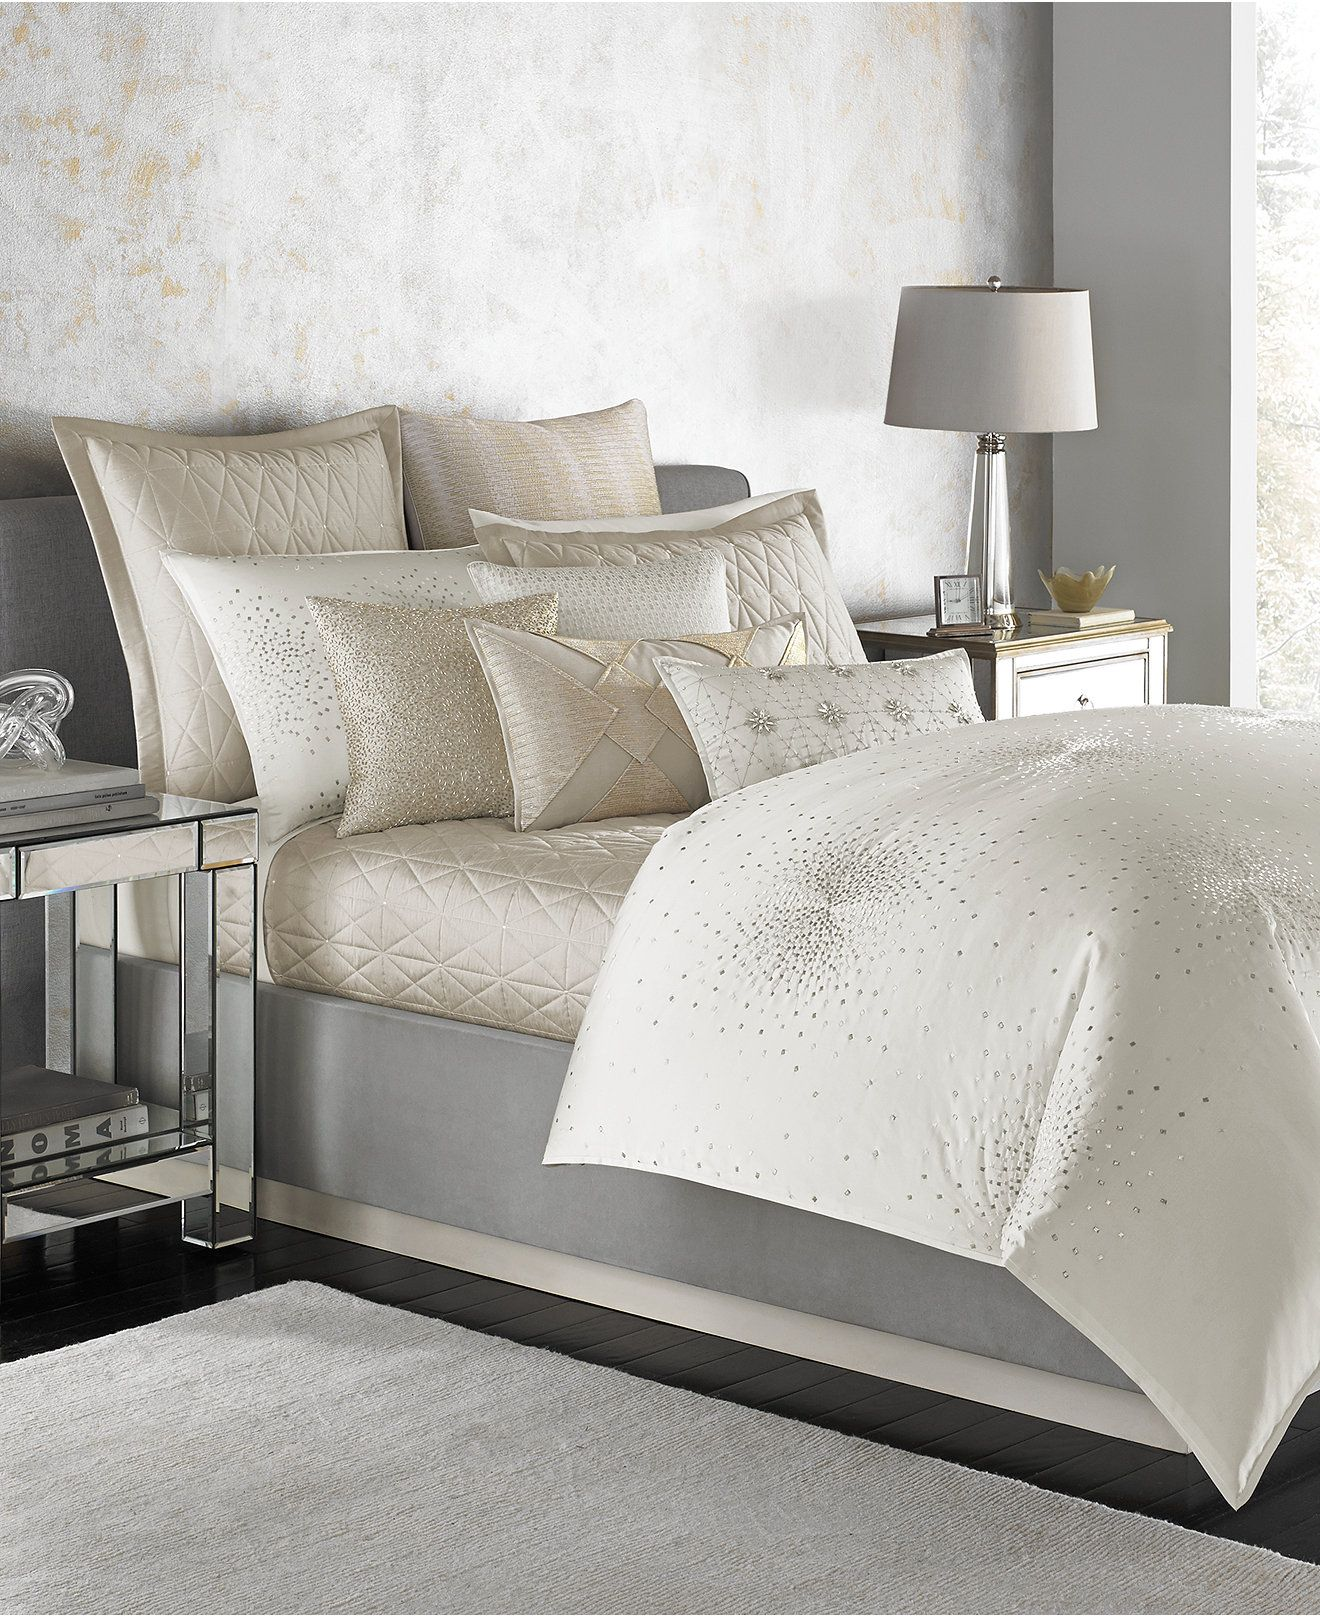 Hotel Bedrooms Collection Impressive Hotel Collection Finest Sunburst Bedding Collection Only At . Design Inspiration